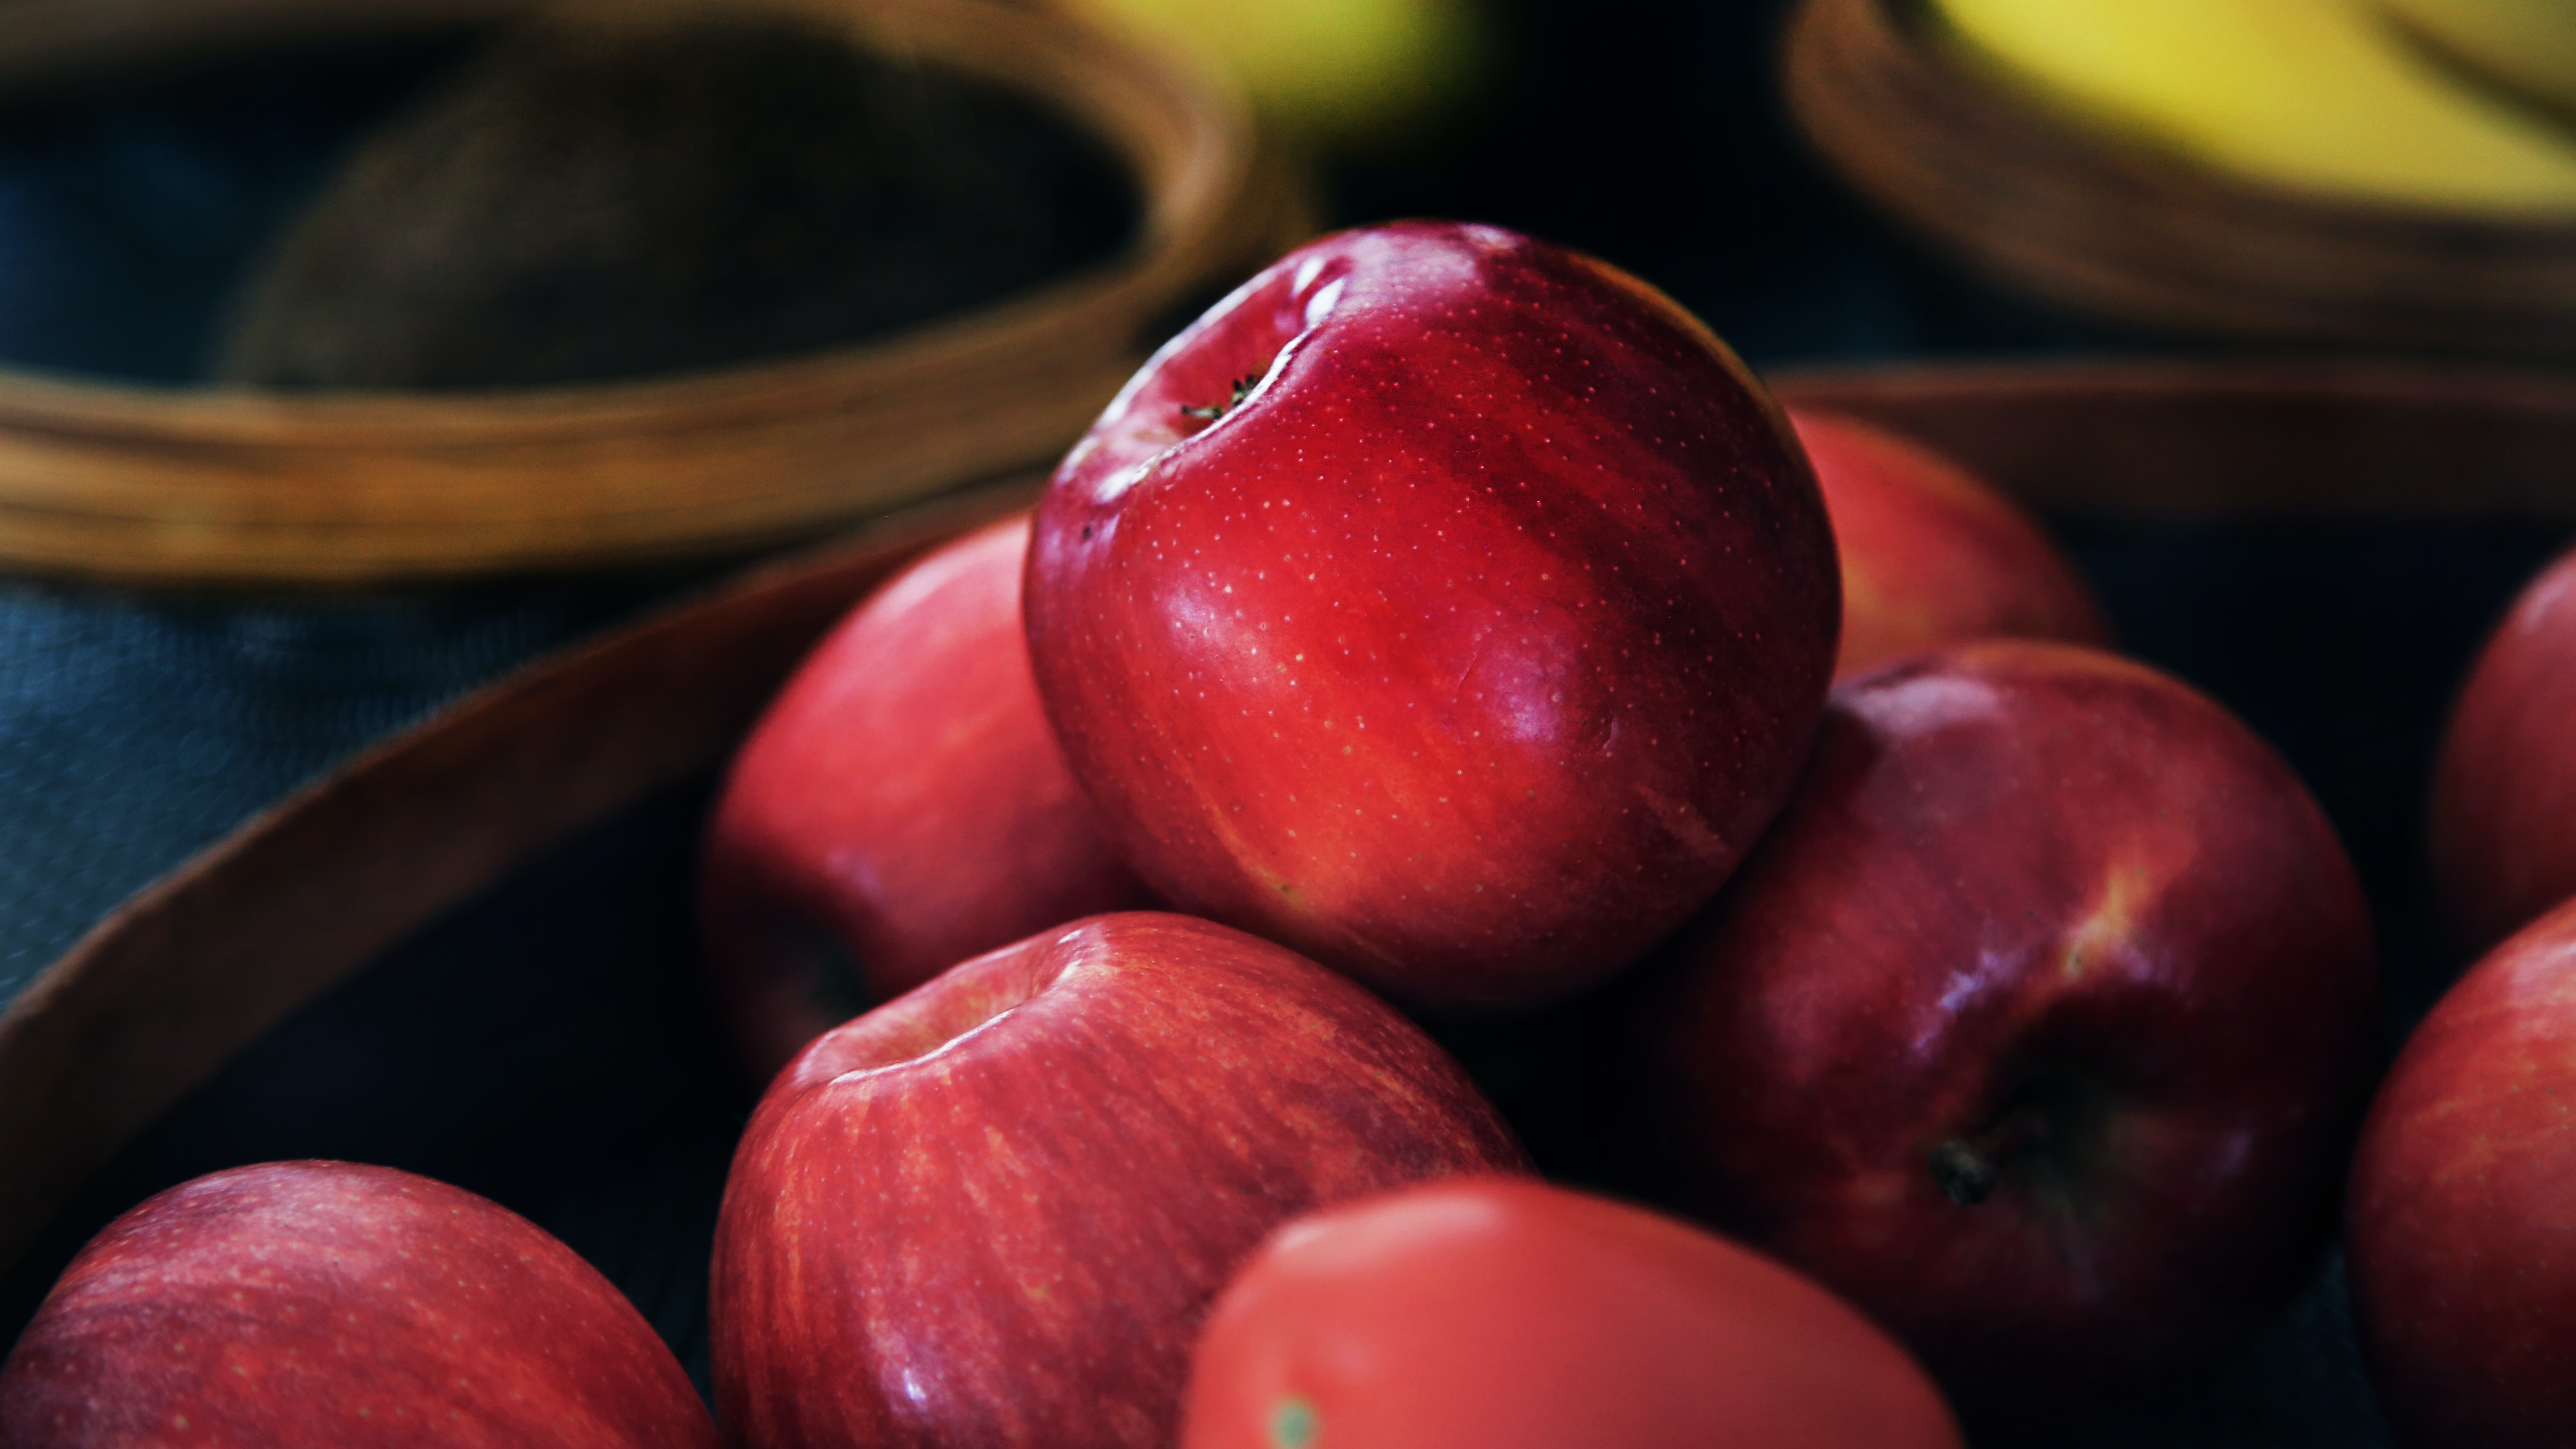 A bowl of fresh red apples